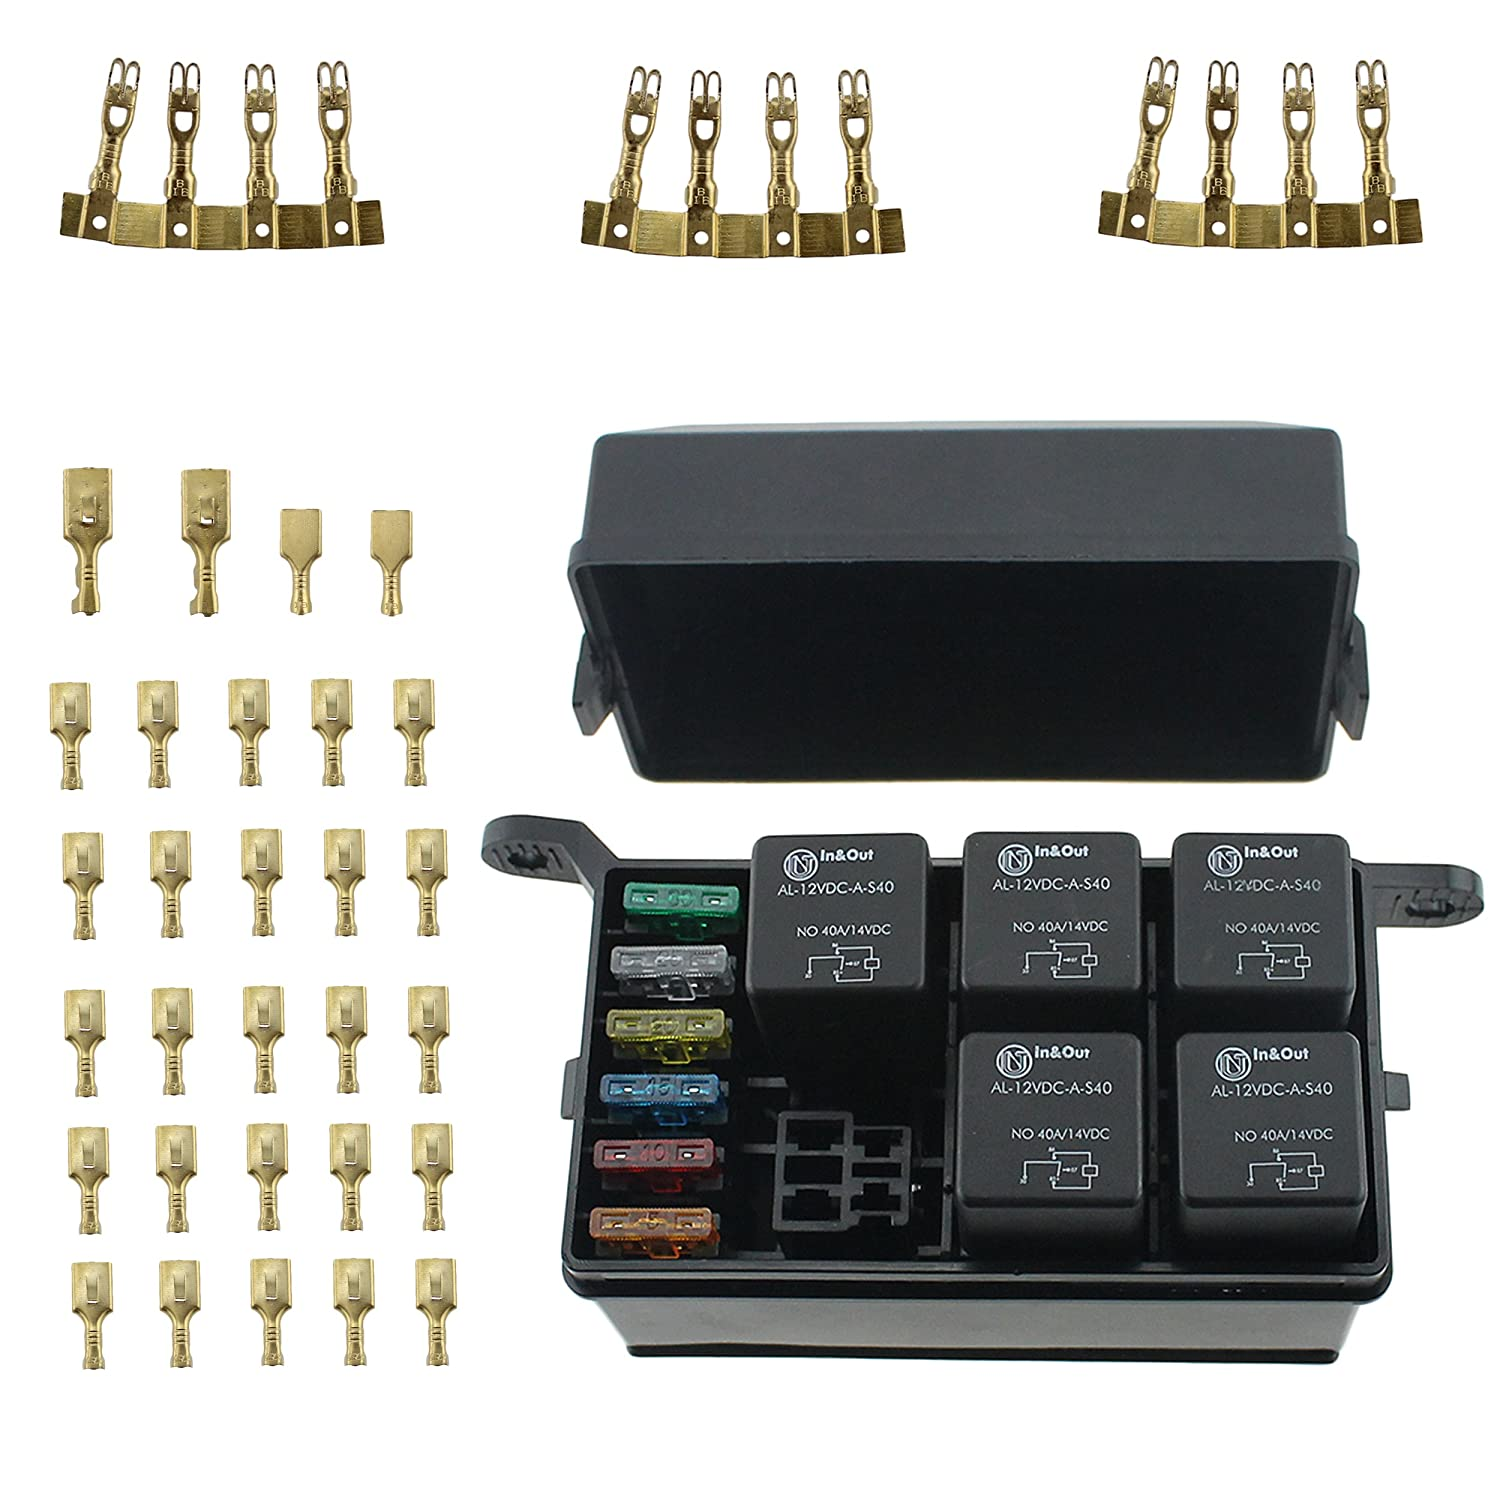 81Uj6Pmk1gL._SL1500_ amazon com fuse boxes fuses & accessories automotive  at gsmx.co